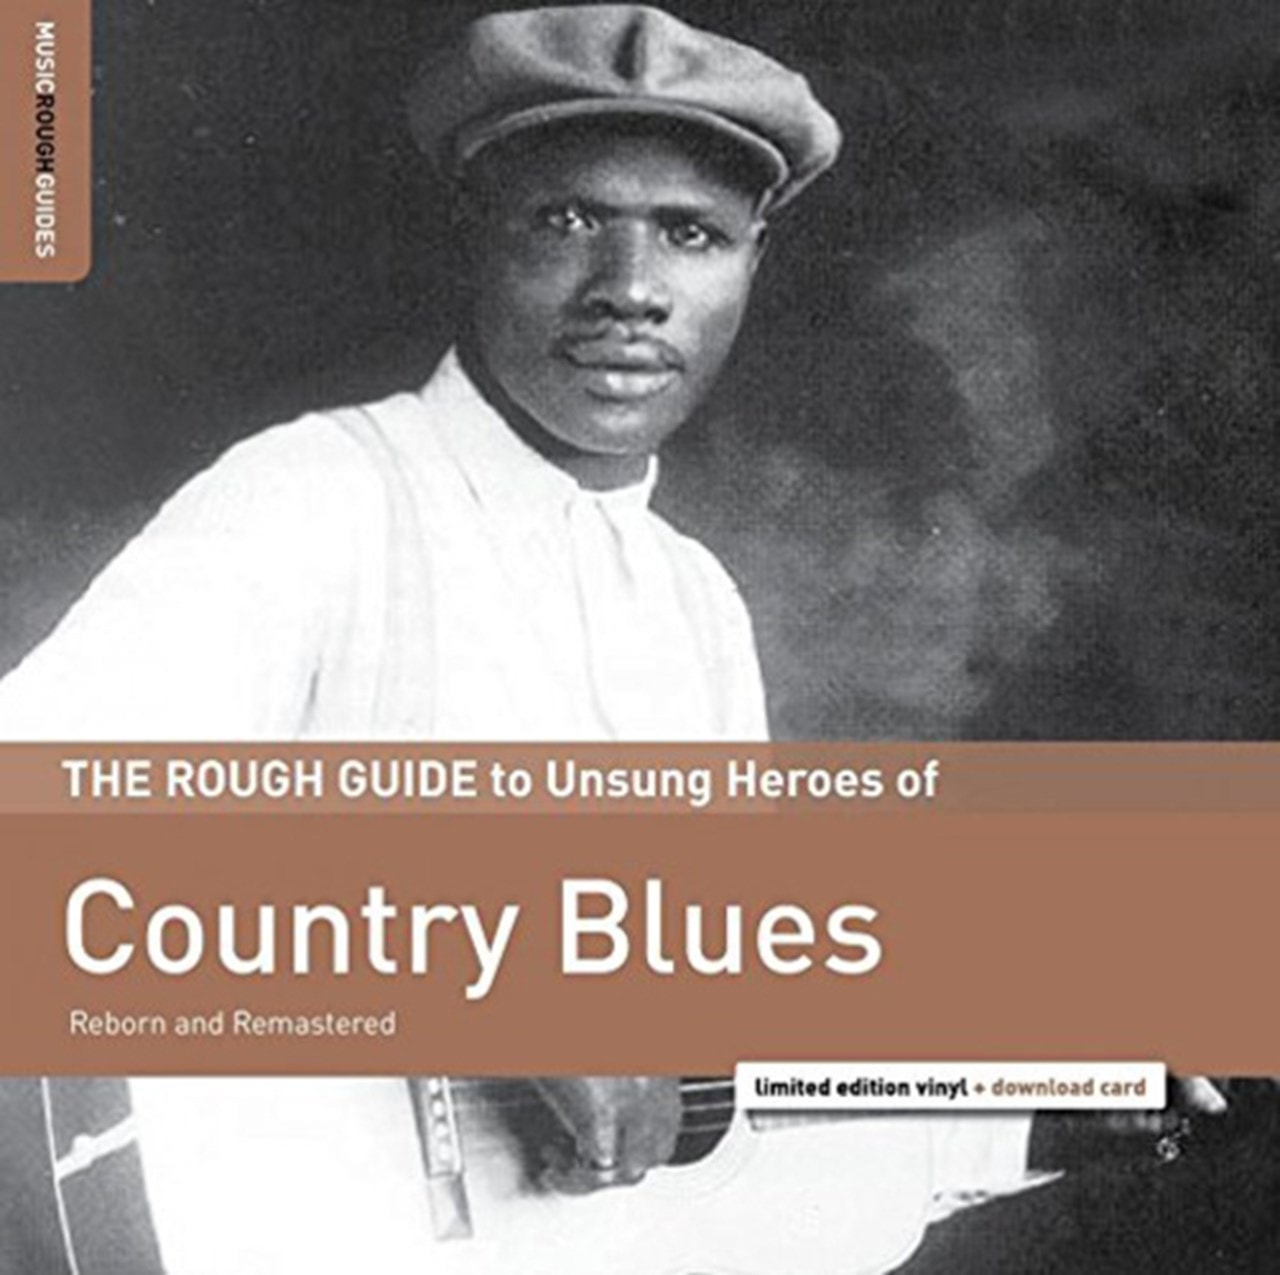 The Rough Guide to Unsung Heroes of Country Blues - 1